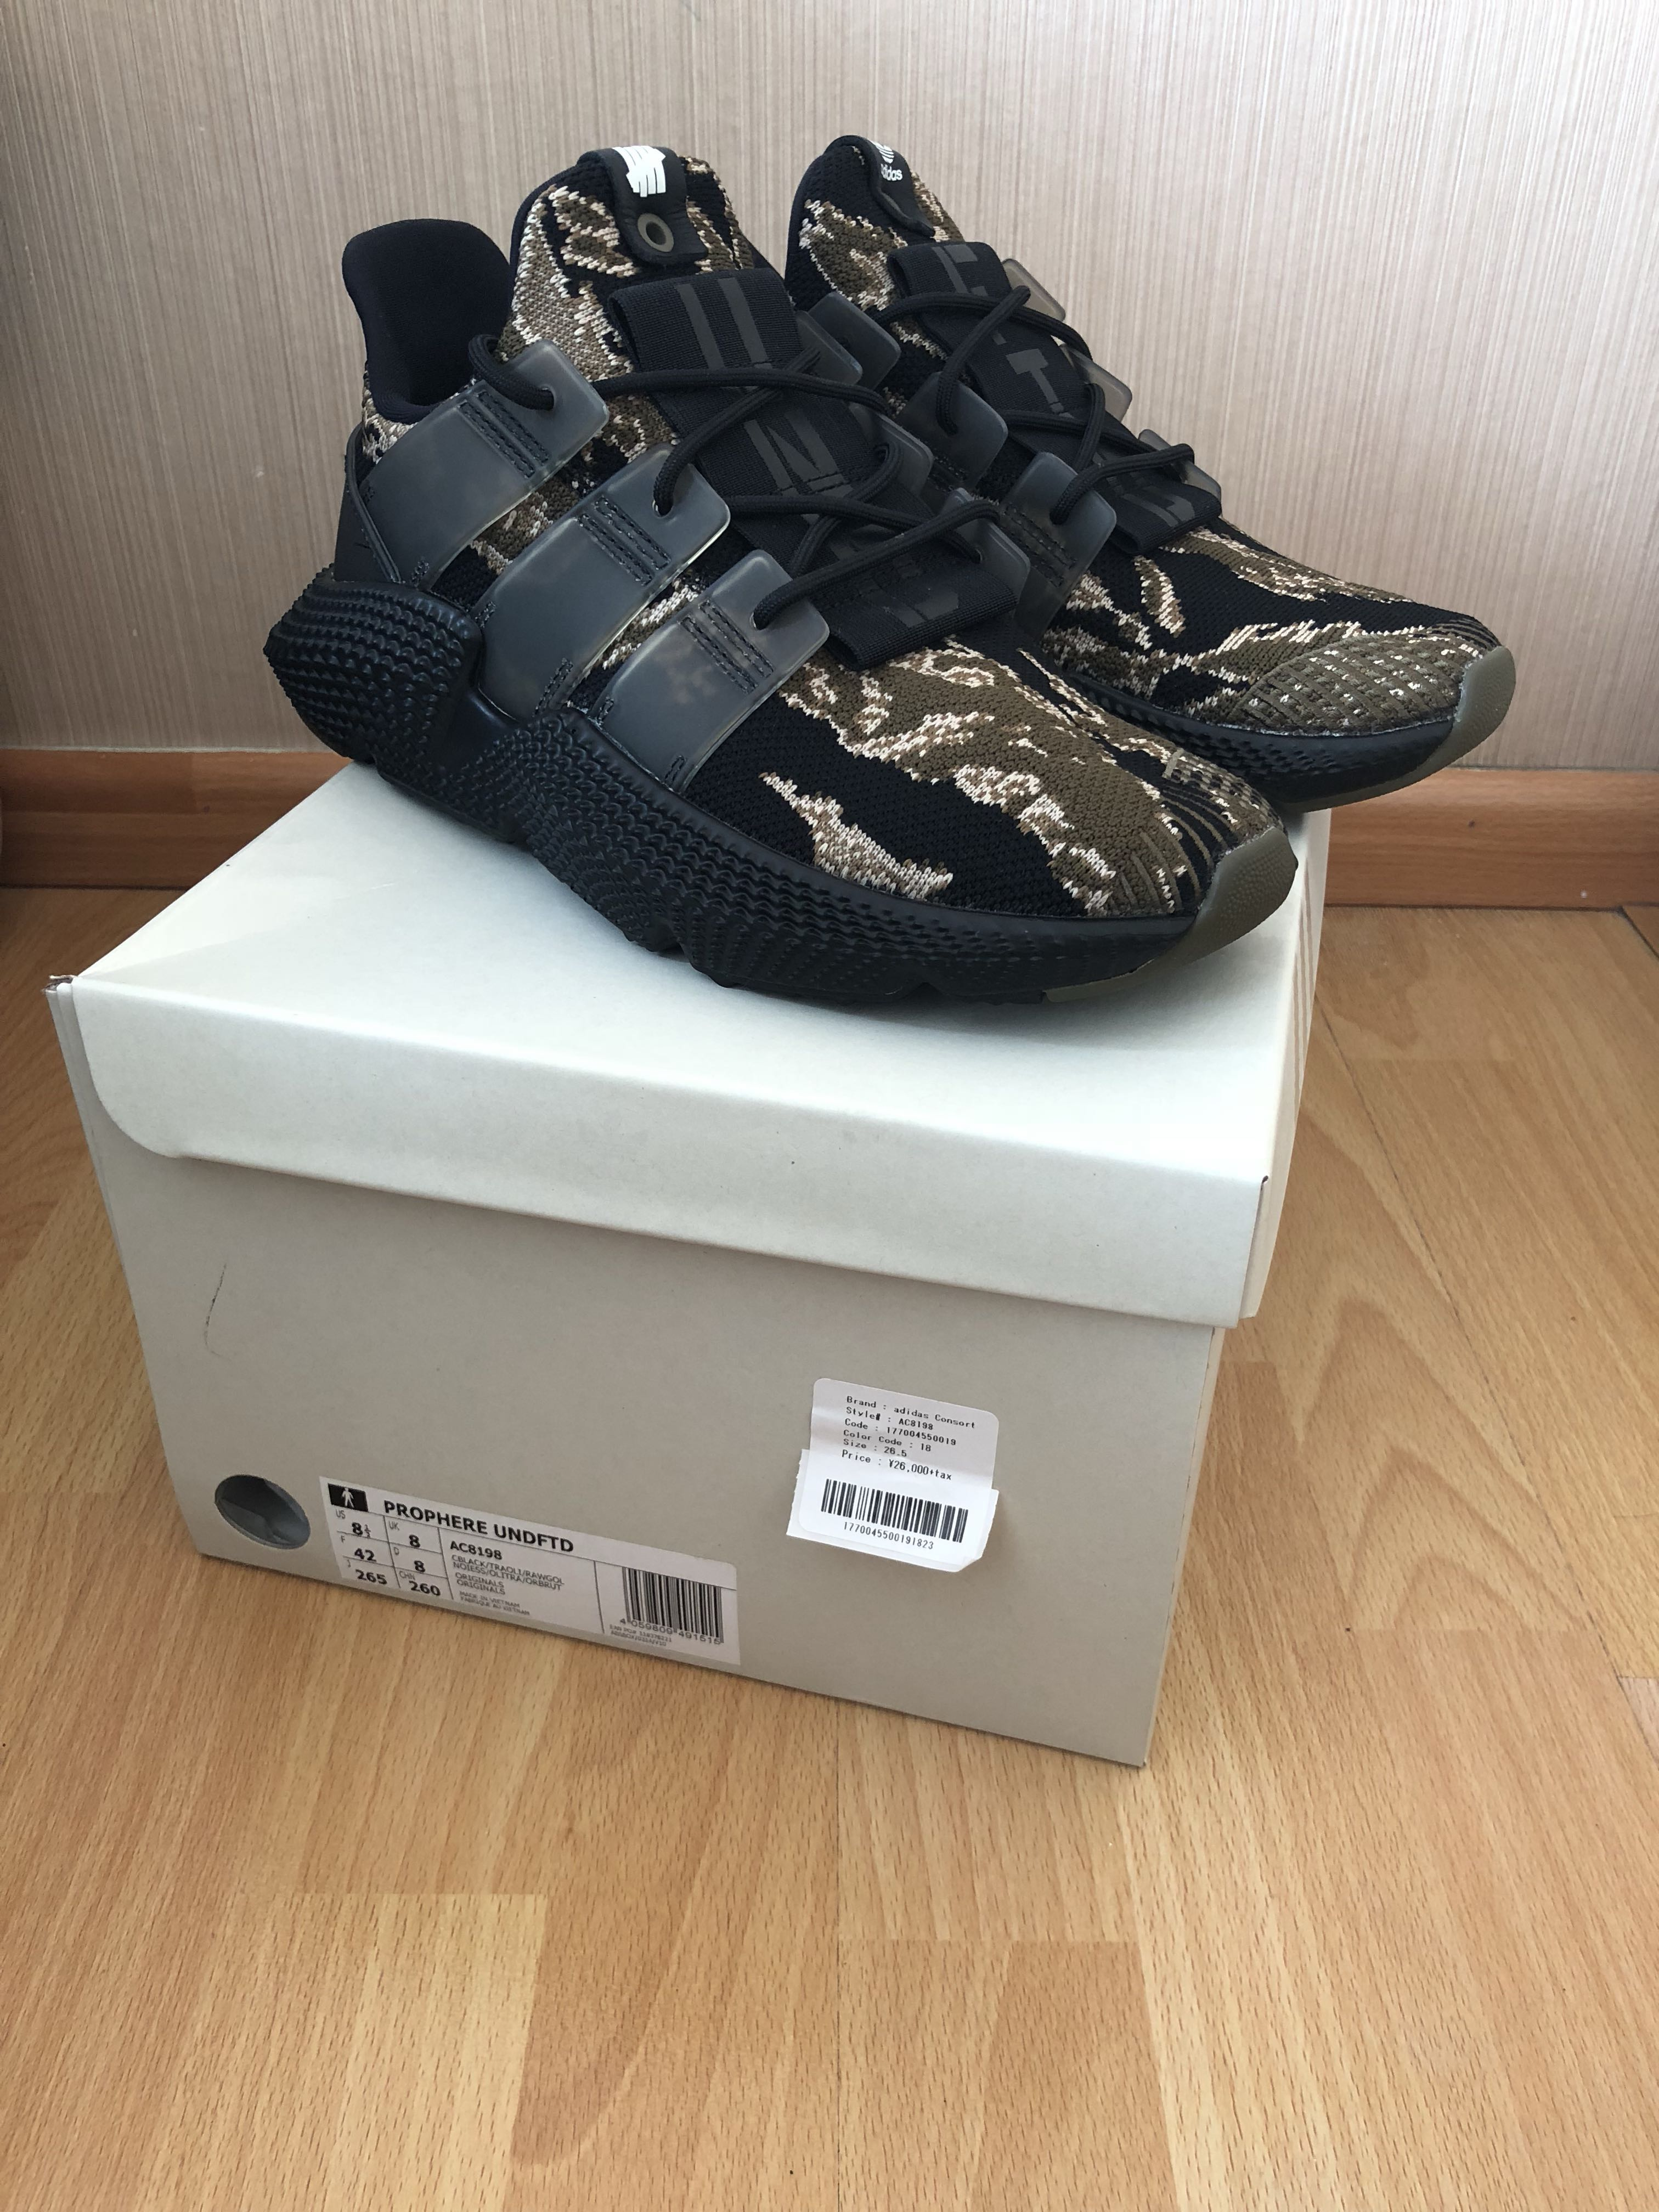 separation shoes 365e2 e1ad1 Adidas prophere undefeated, Men's Fashion, Footwear on Carousell